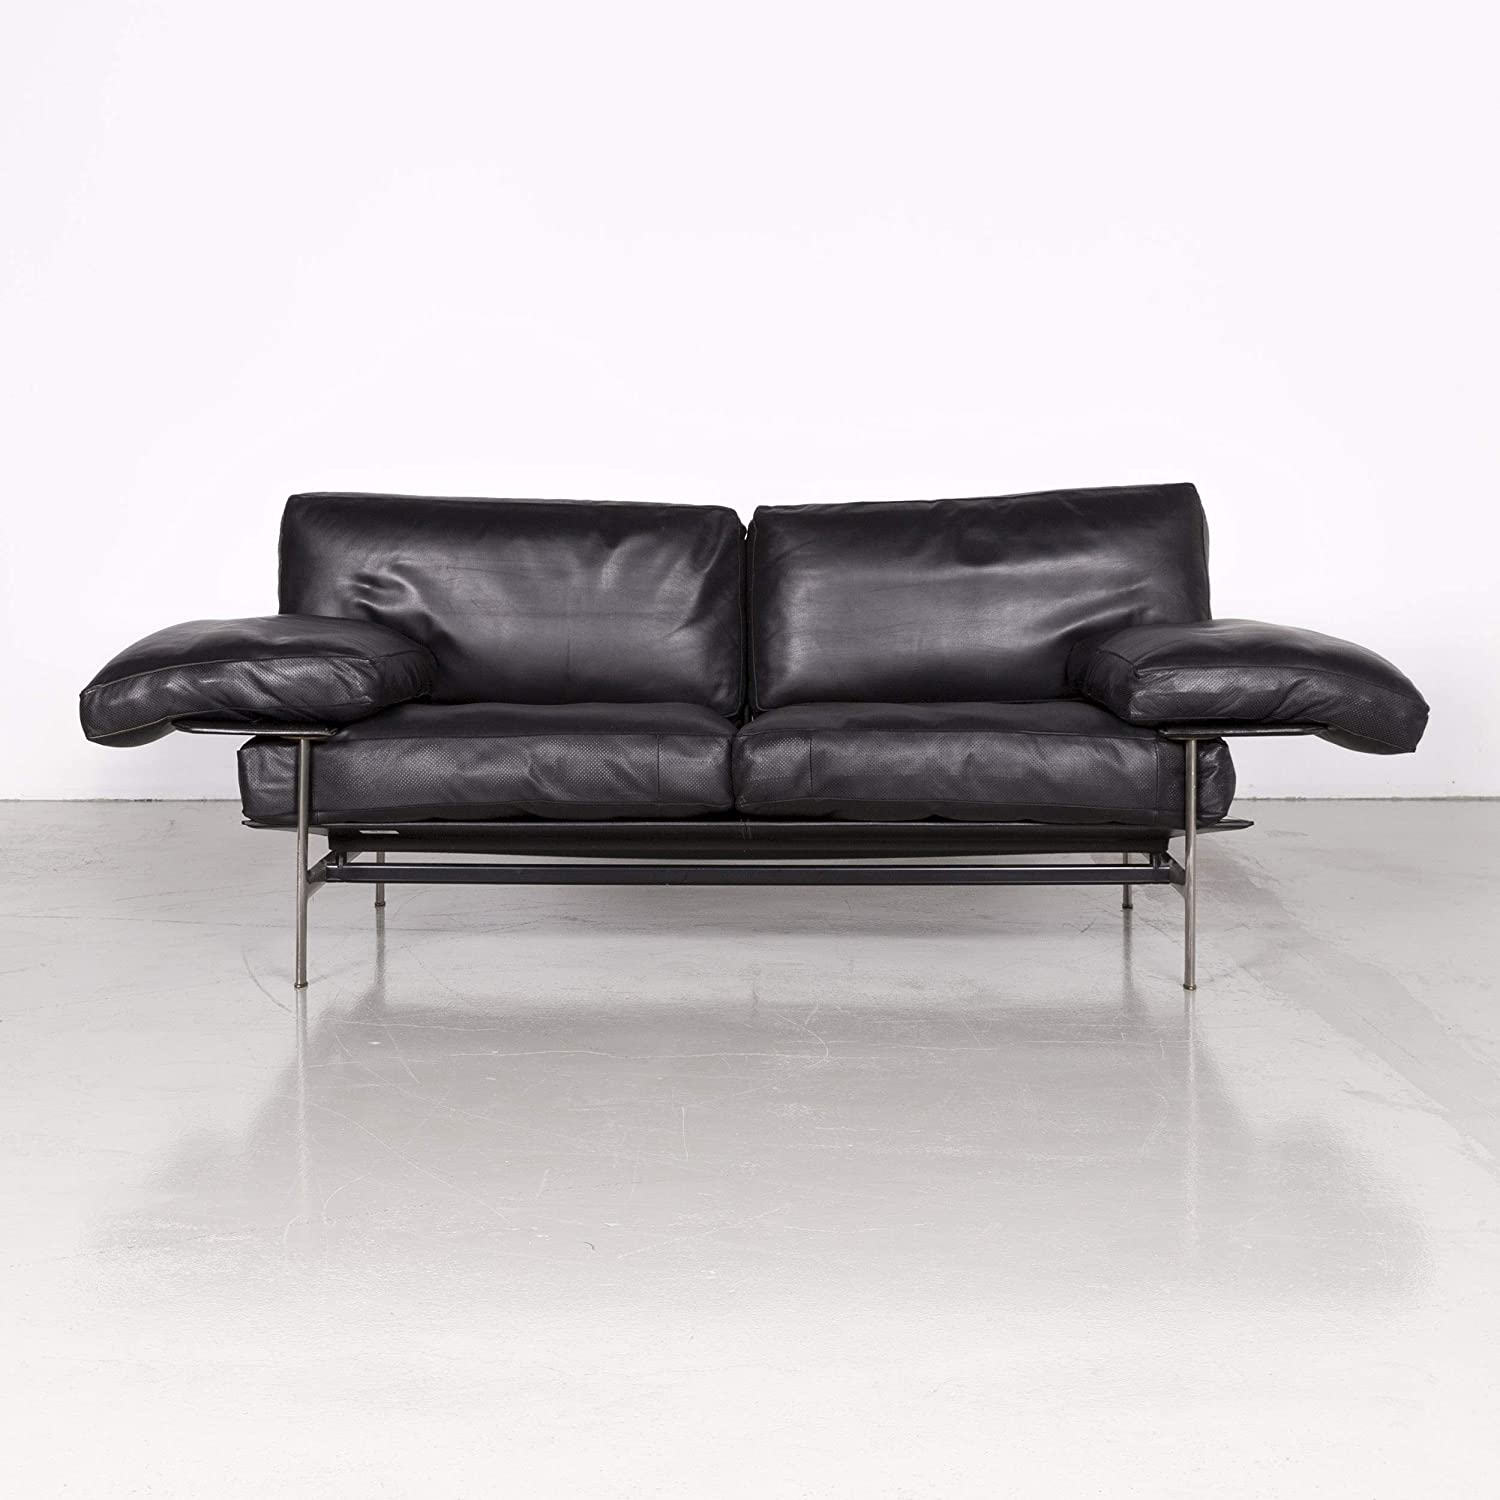 B & B Italia Diesis Leather Designer Sofa Black by Antonio ...